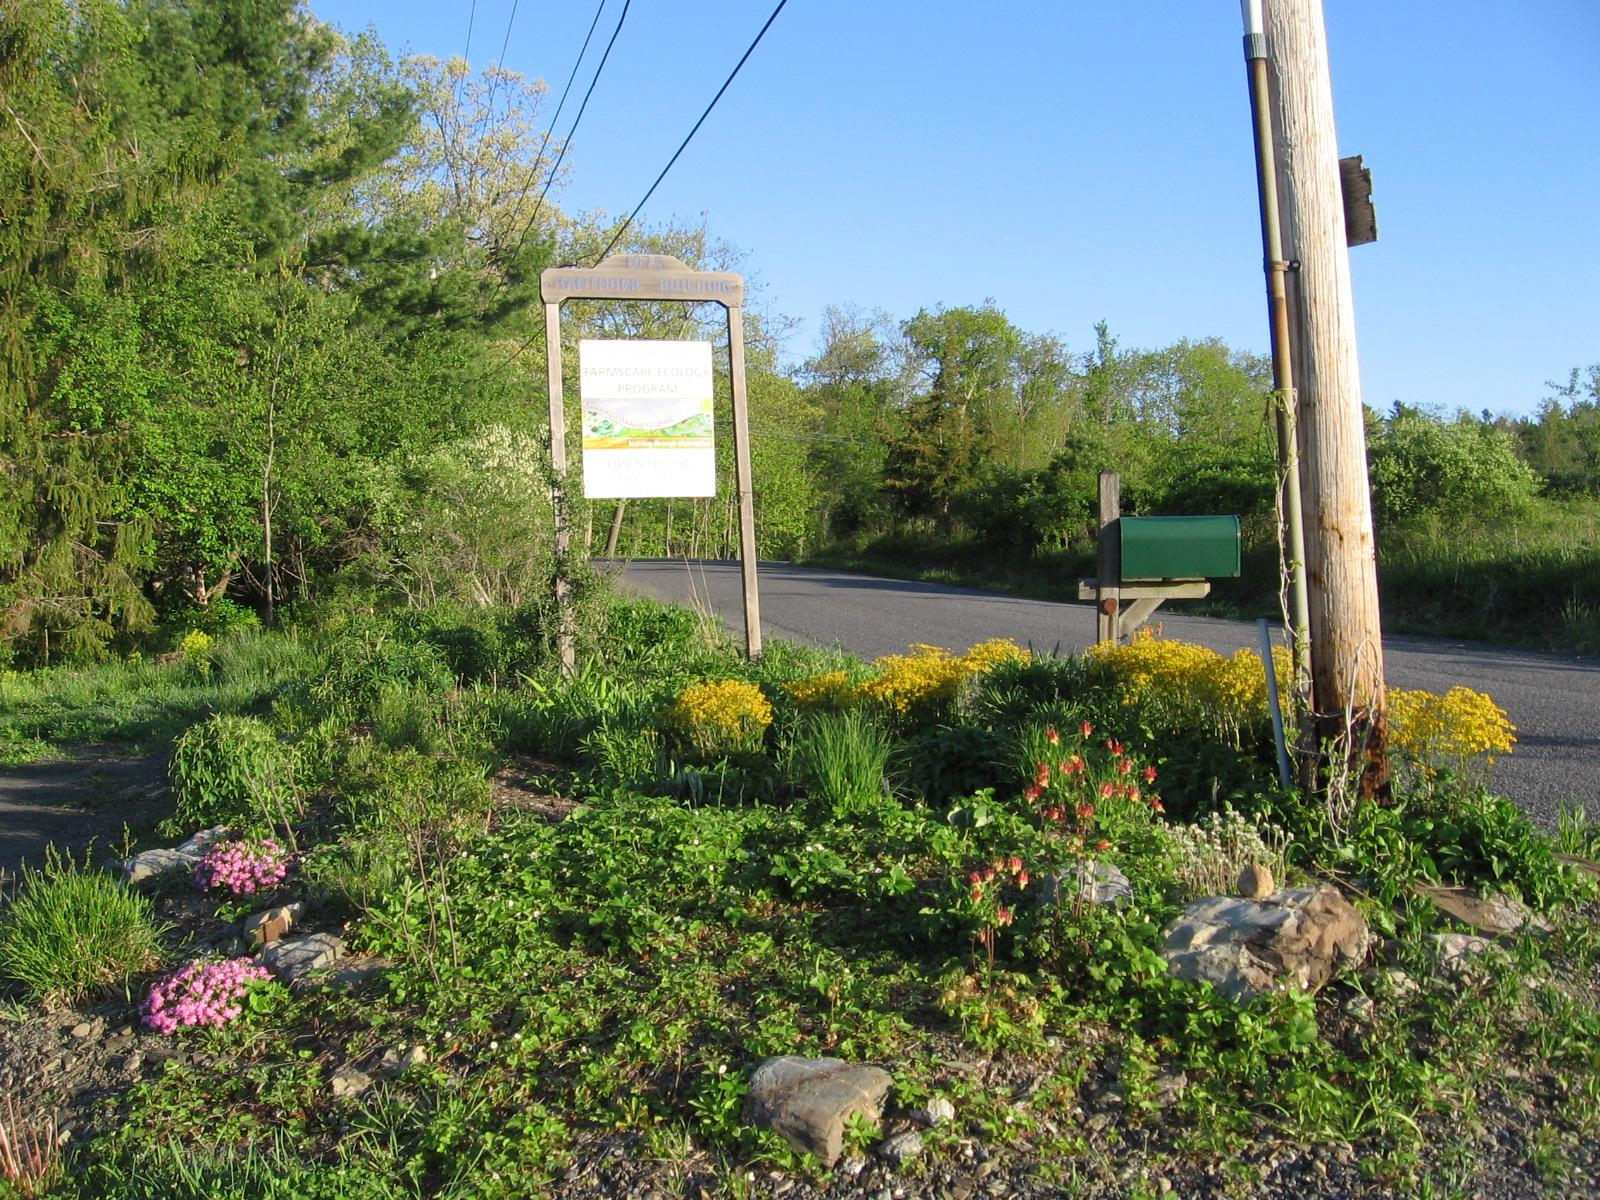 Roadside Garden in May 2012